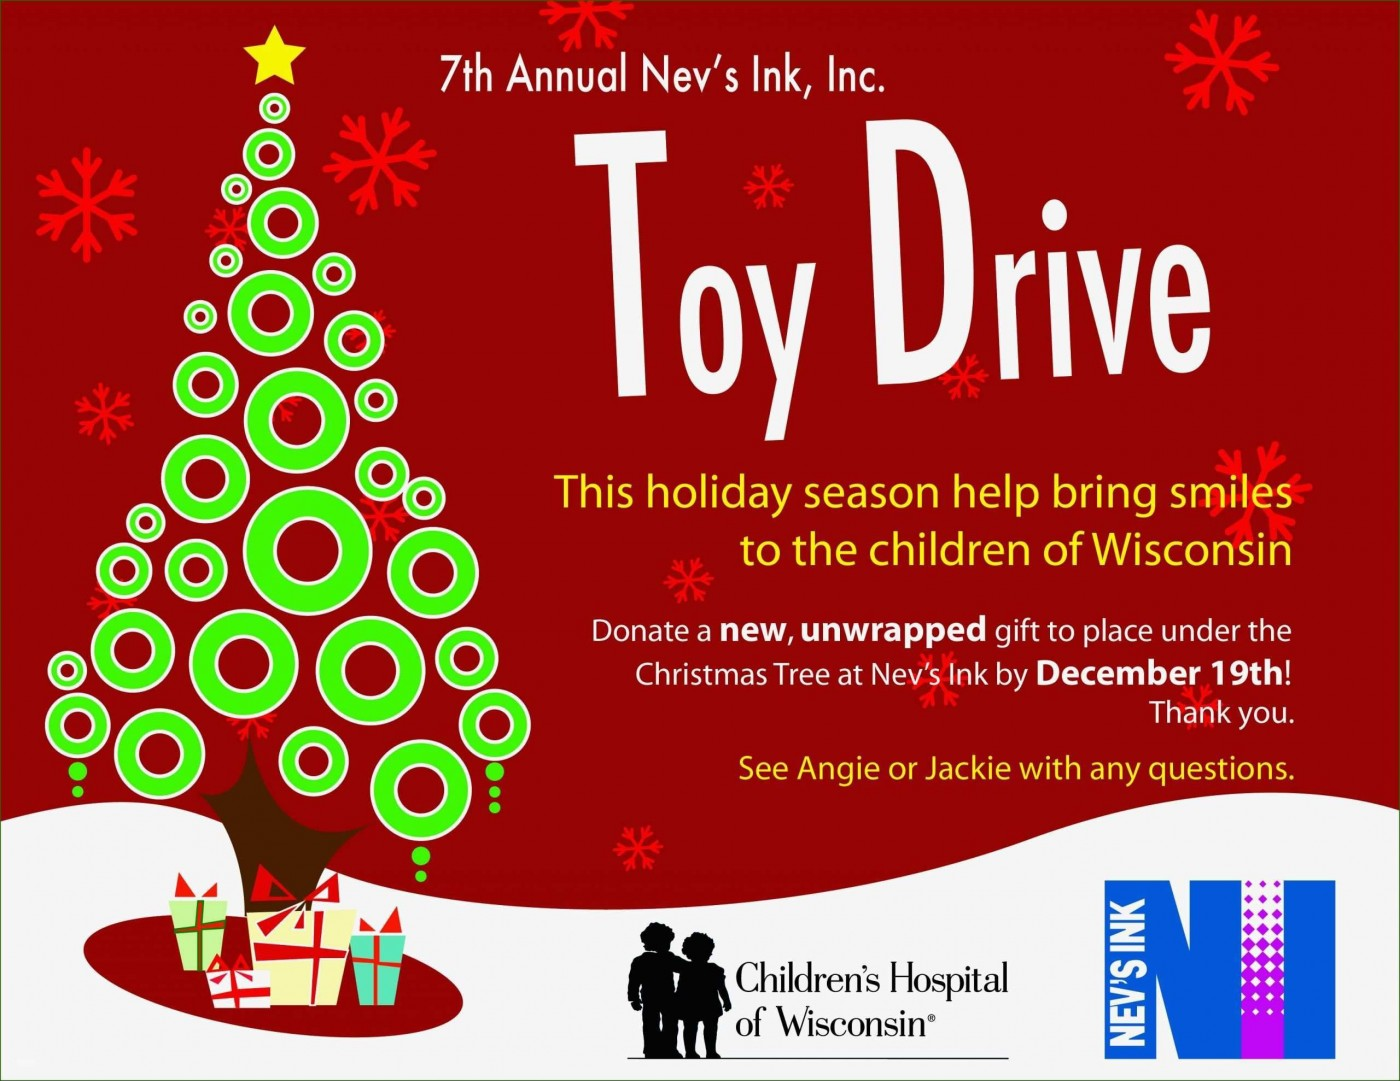 005 Unusual Toy Drive Flyer Template Free Photo  Download Christma1400